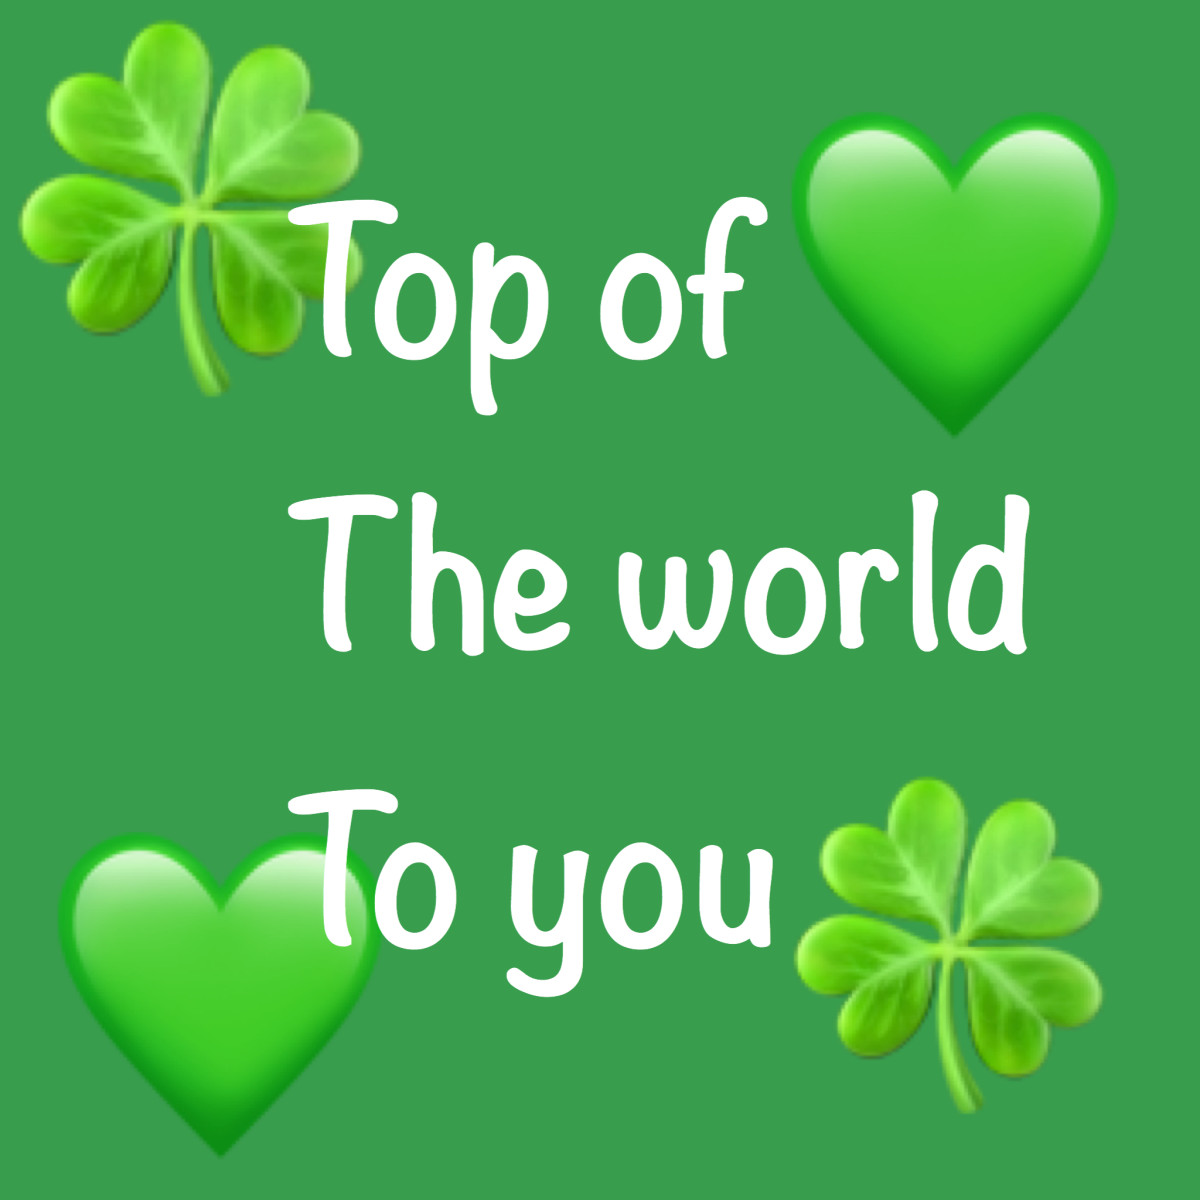 irish-sayings-blessings